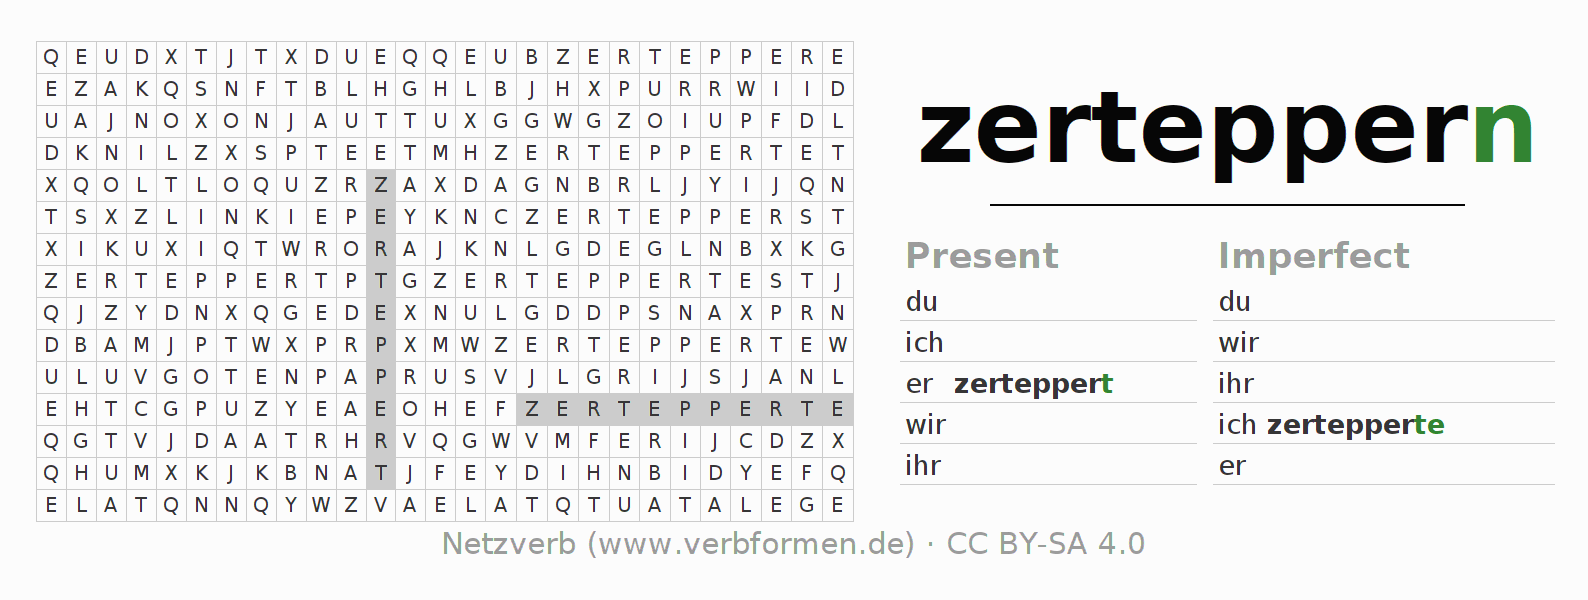 Word search puzzle for the conjugation of the verb zerteppern